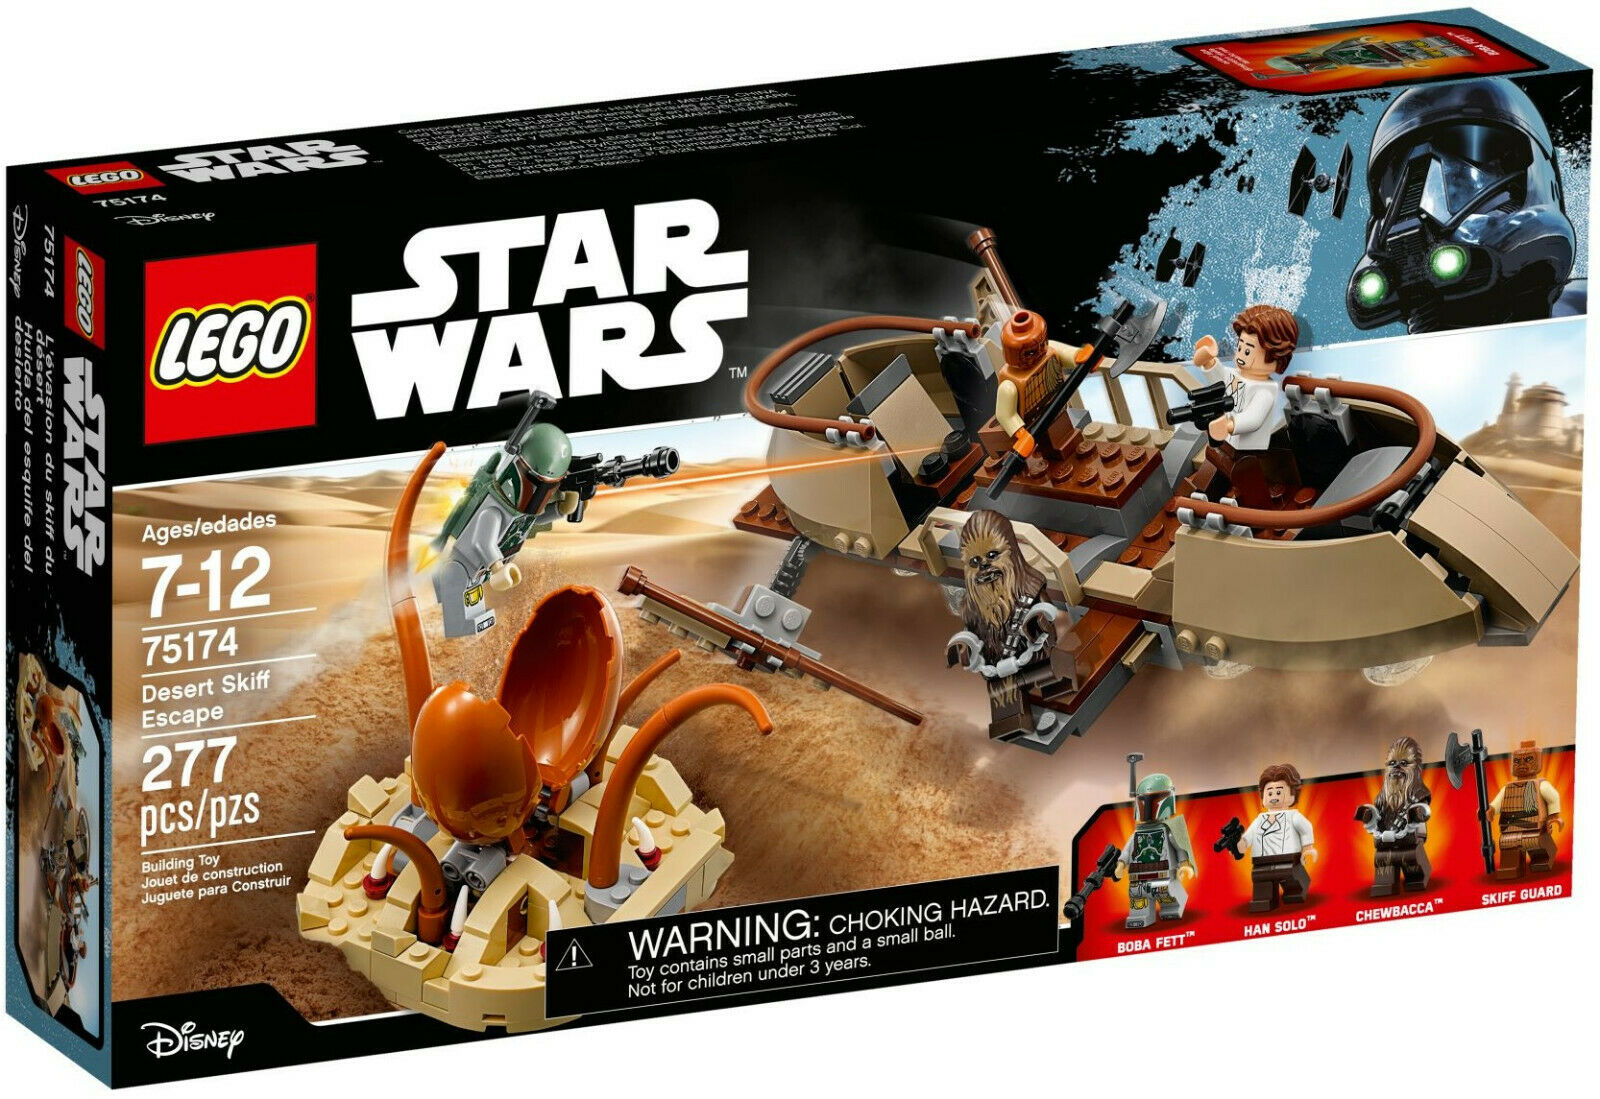 LEGO 75174 Star Wars Desert Skiff Escape Brand New In Sealed Box